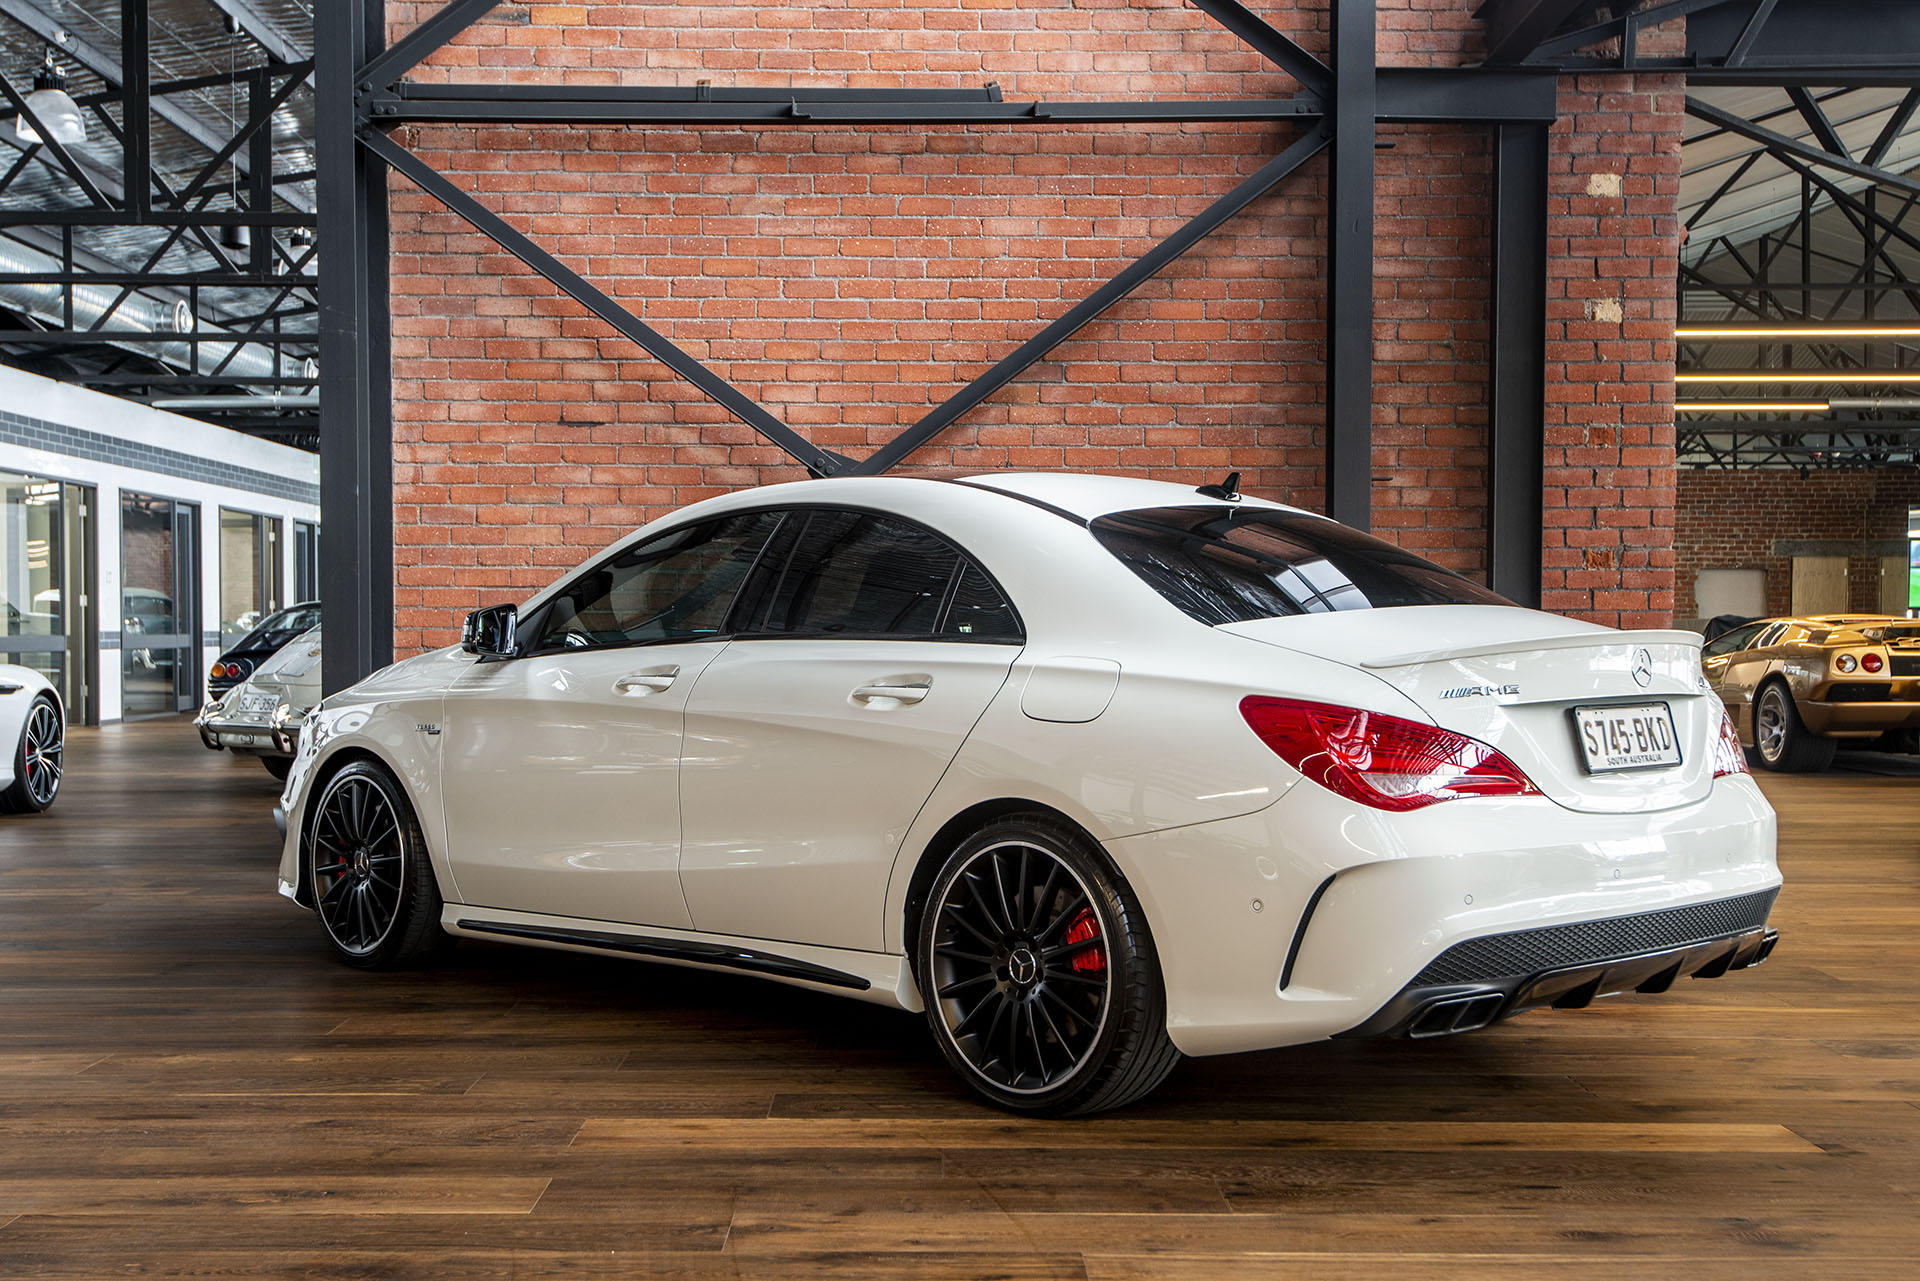 Mercedes Cla 45 Amg For Sale >> 2016 Mercedes Benz CLA45 AMG - Richmonds - Classic and ...